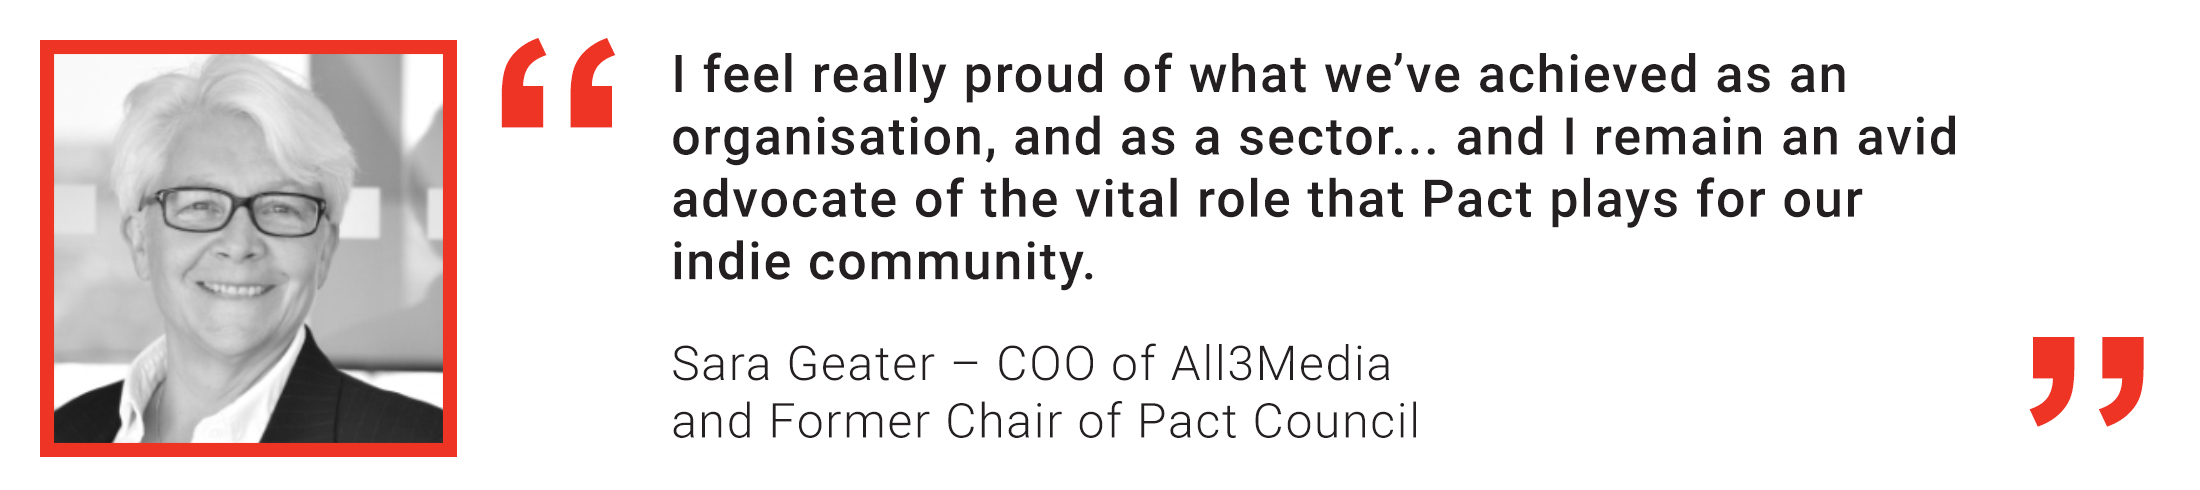 Member quote from Sara Geater, All3Media COO and Former Chair of Pact Council